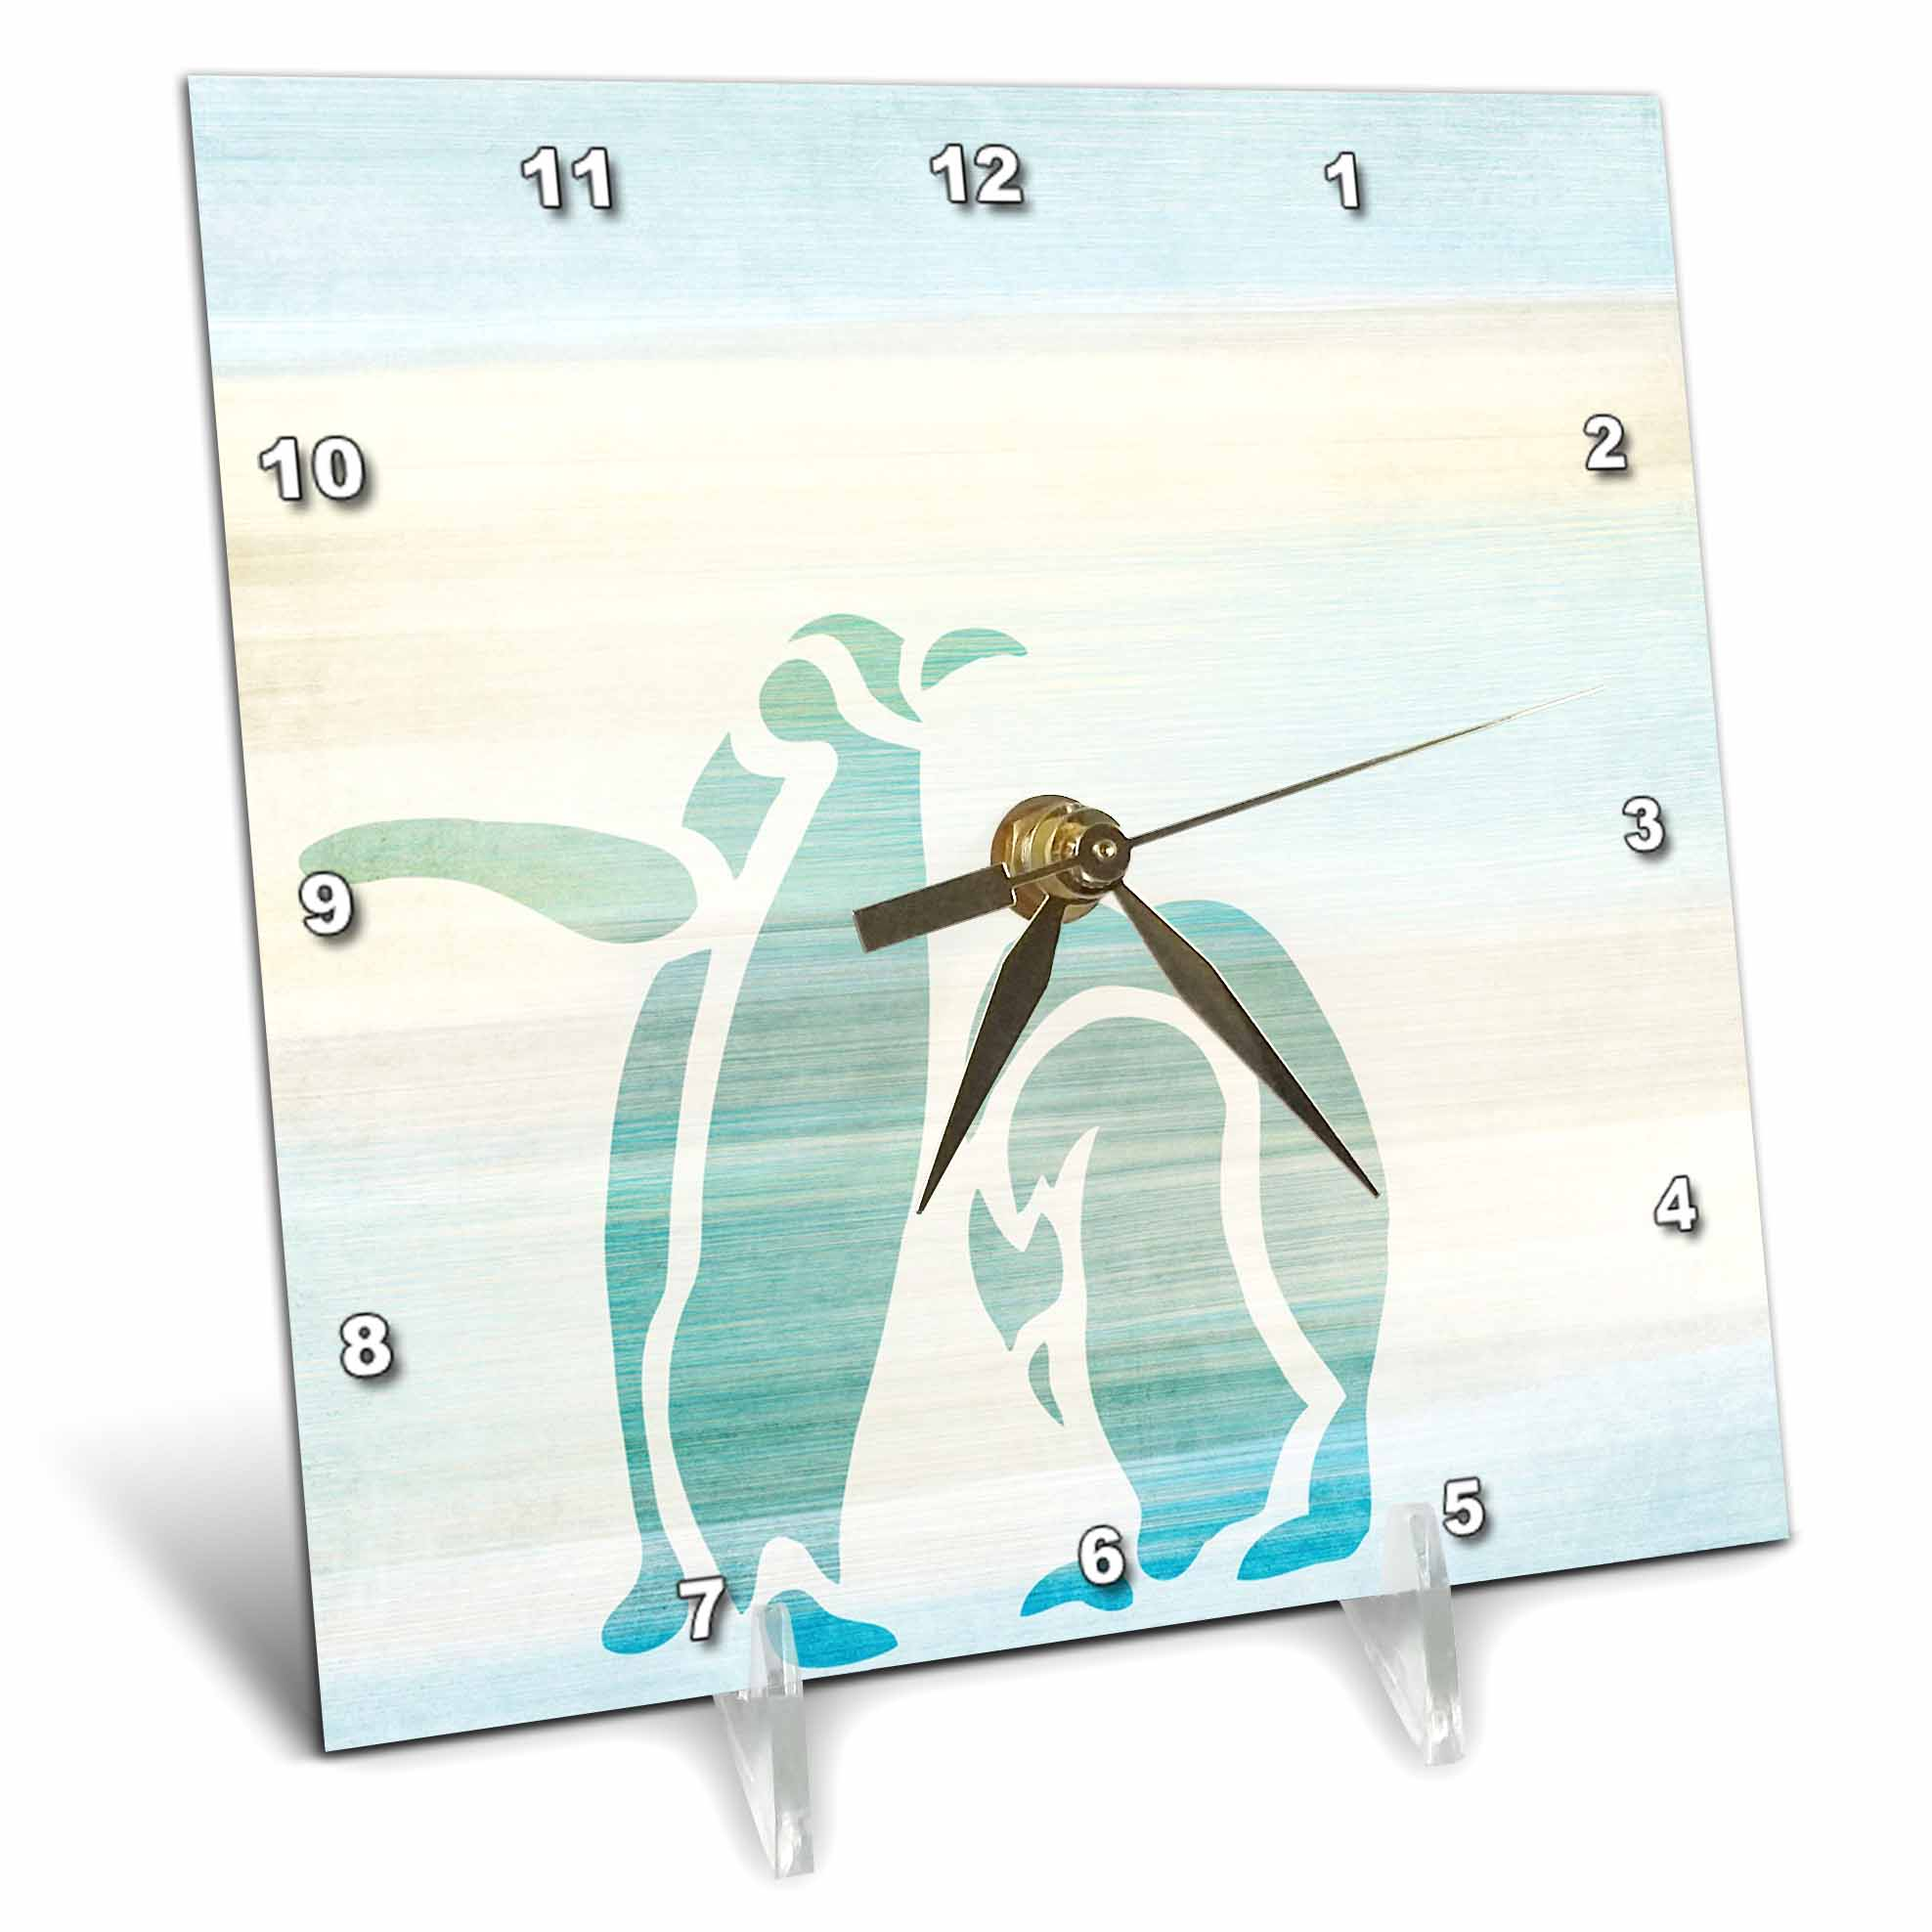 3dRose Aqua Penguins abstract animal art, Desk Clock, 6 by 6-inch by 3dRose